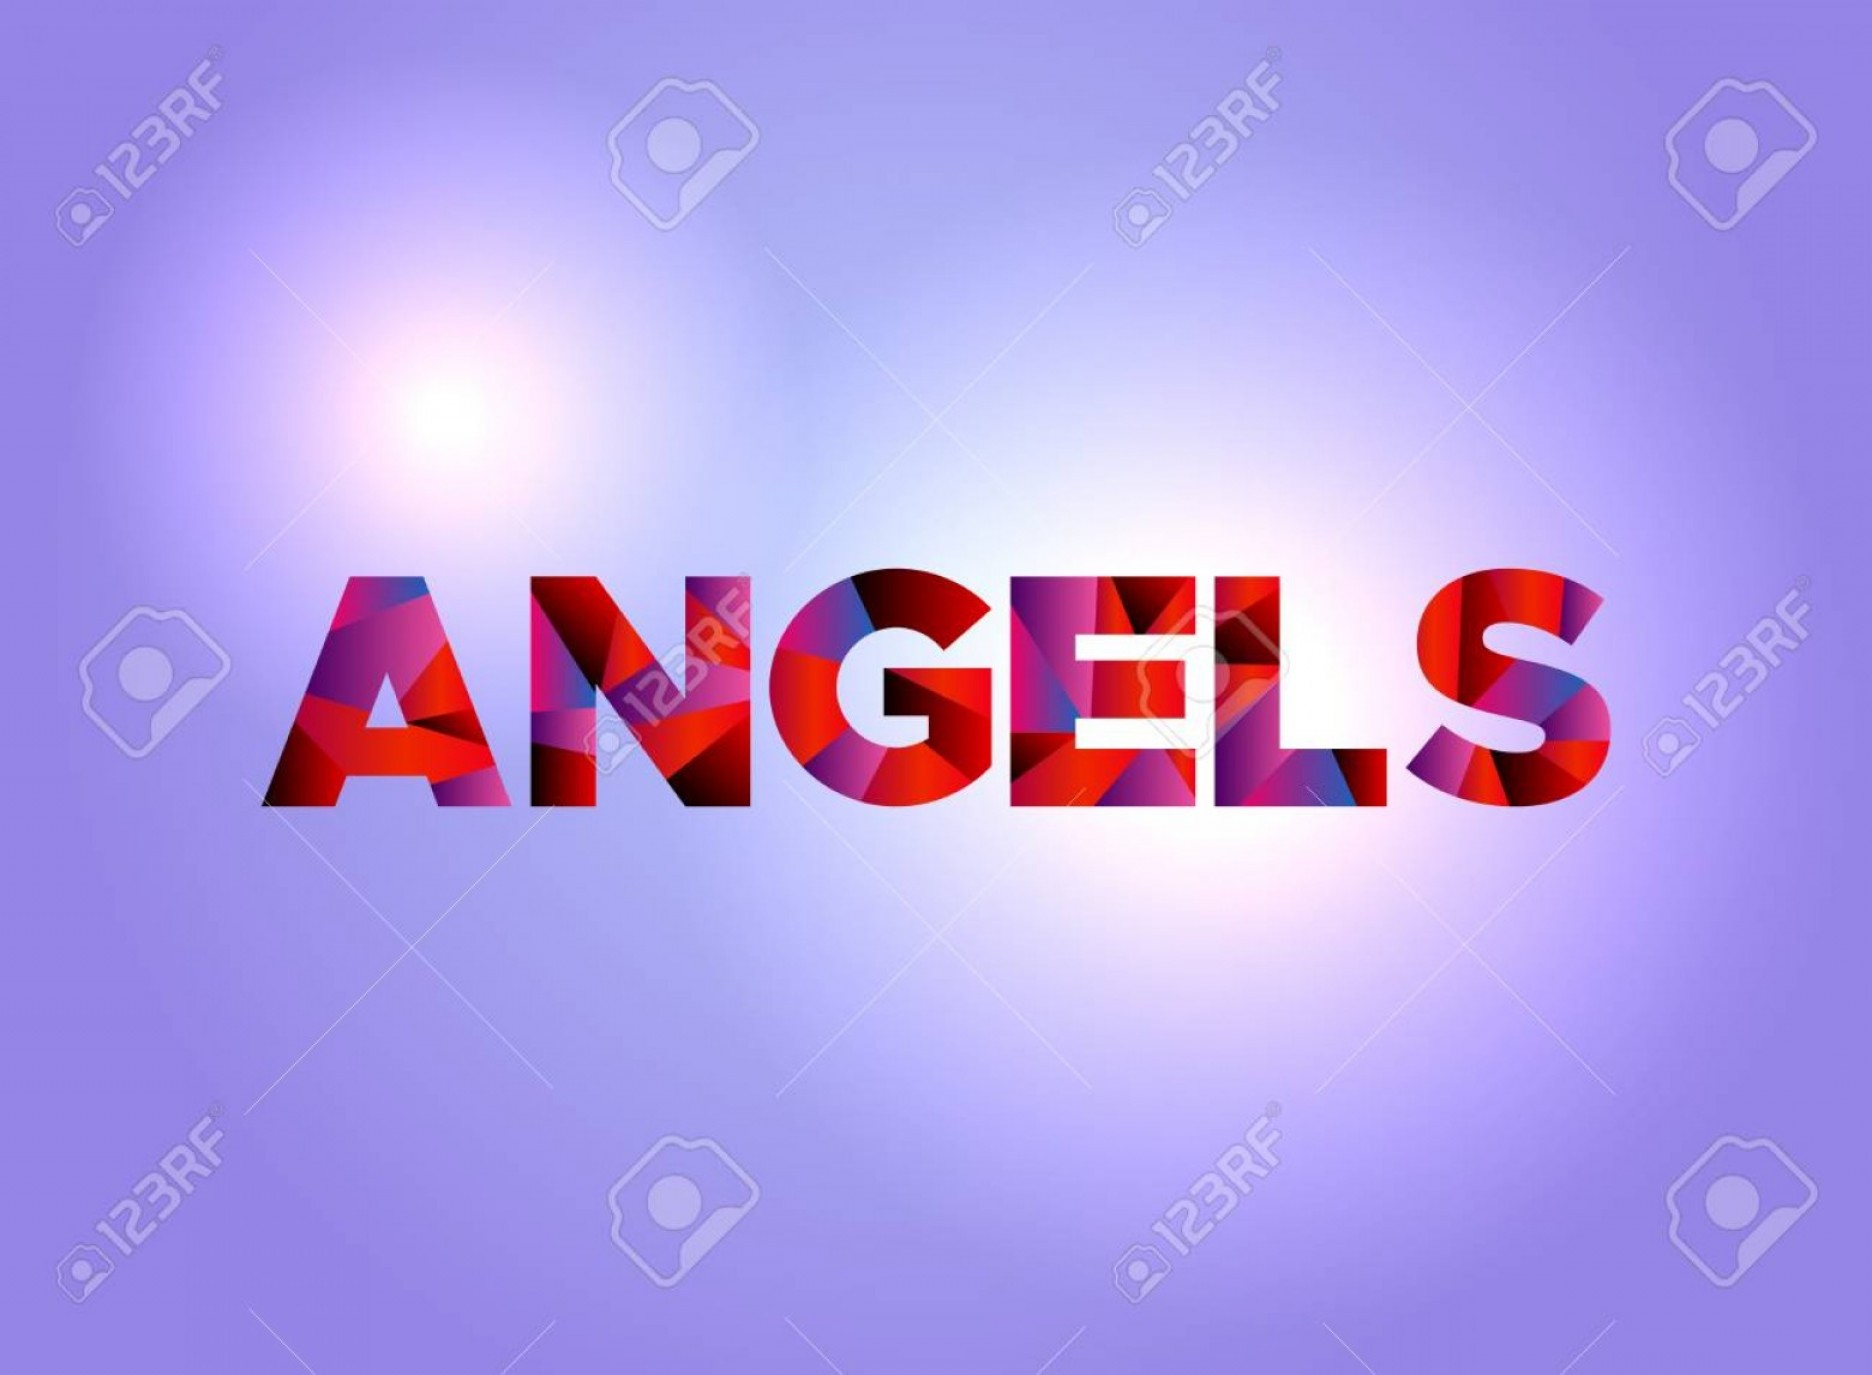 Anaheim Angels Logo Vector Art: Photostock Vector The Word Angels Written In Colorful Abstract Word Art On A Vibrant Background Vector Eps Availabl